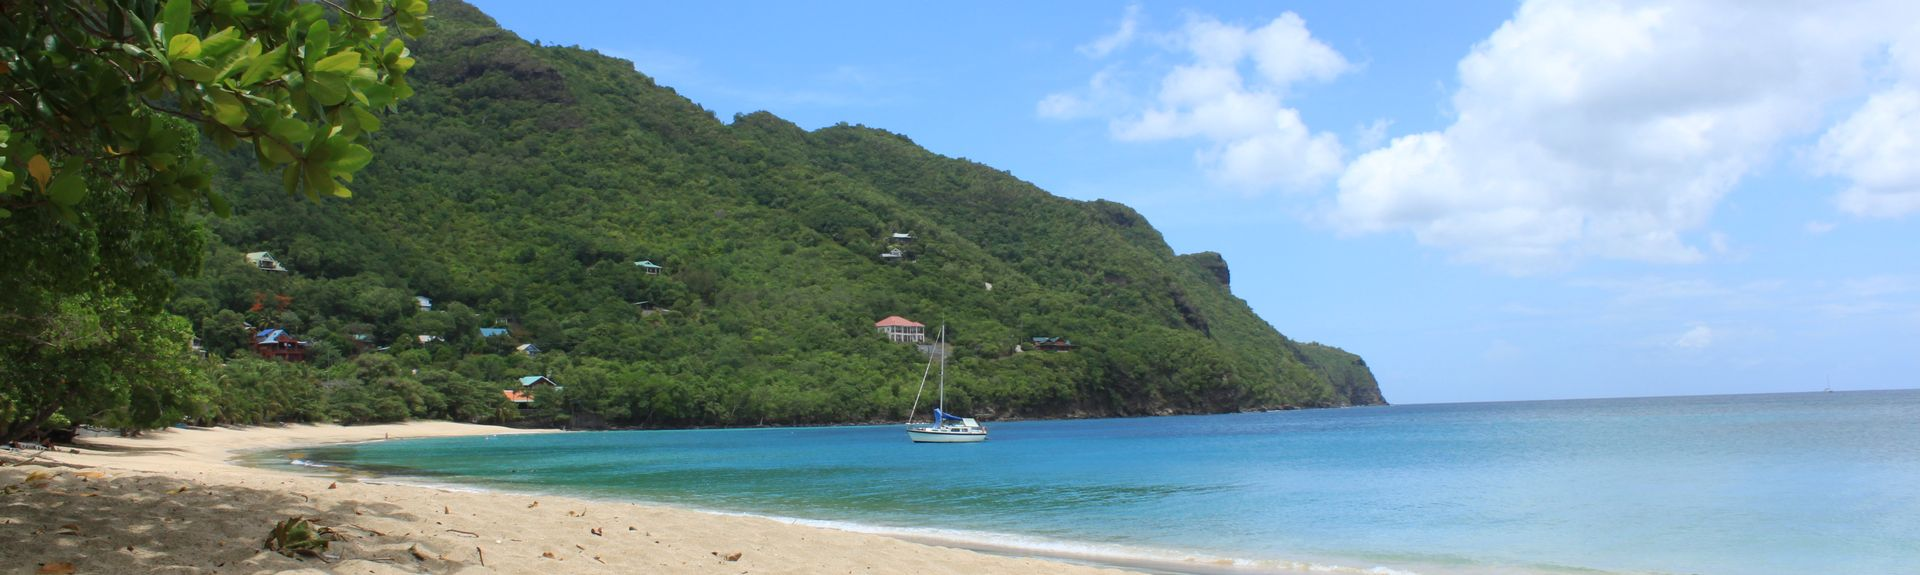 Saint George, St. Vincent and the Grenadines